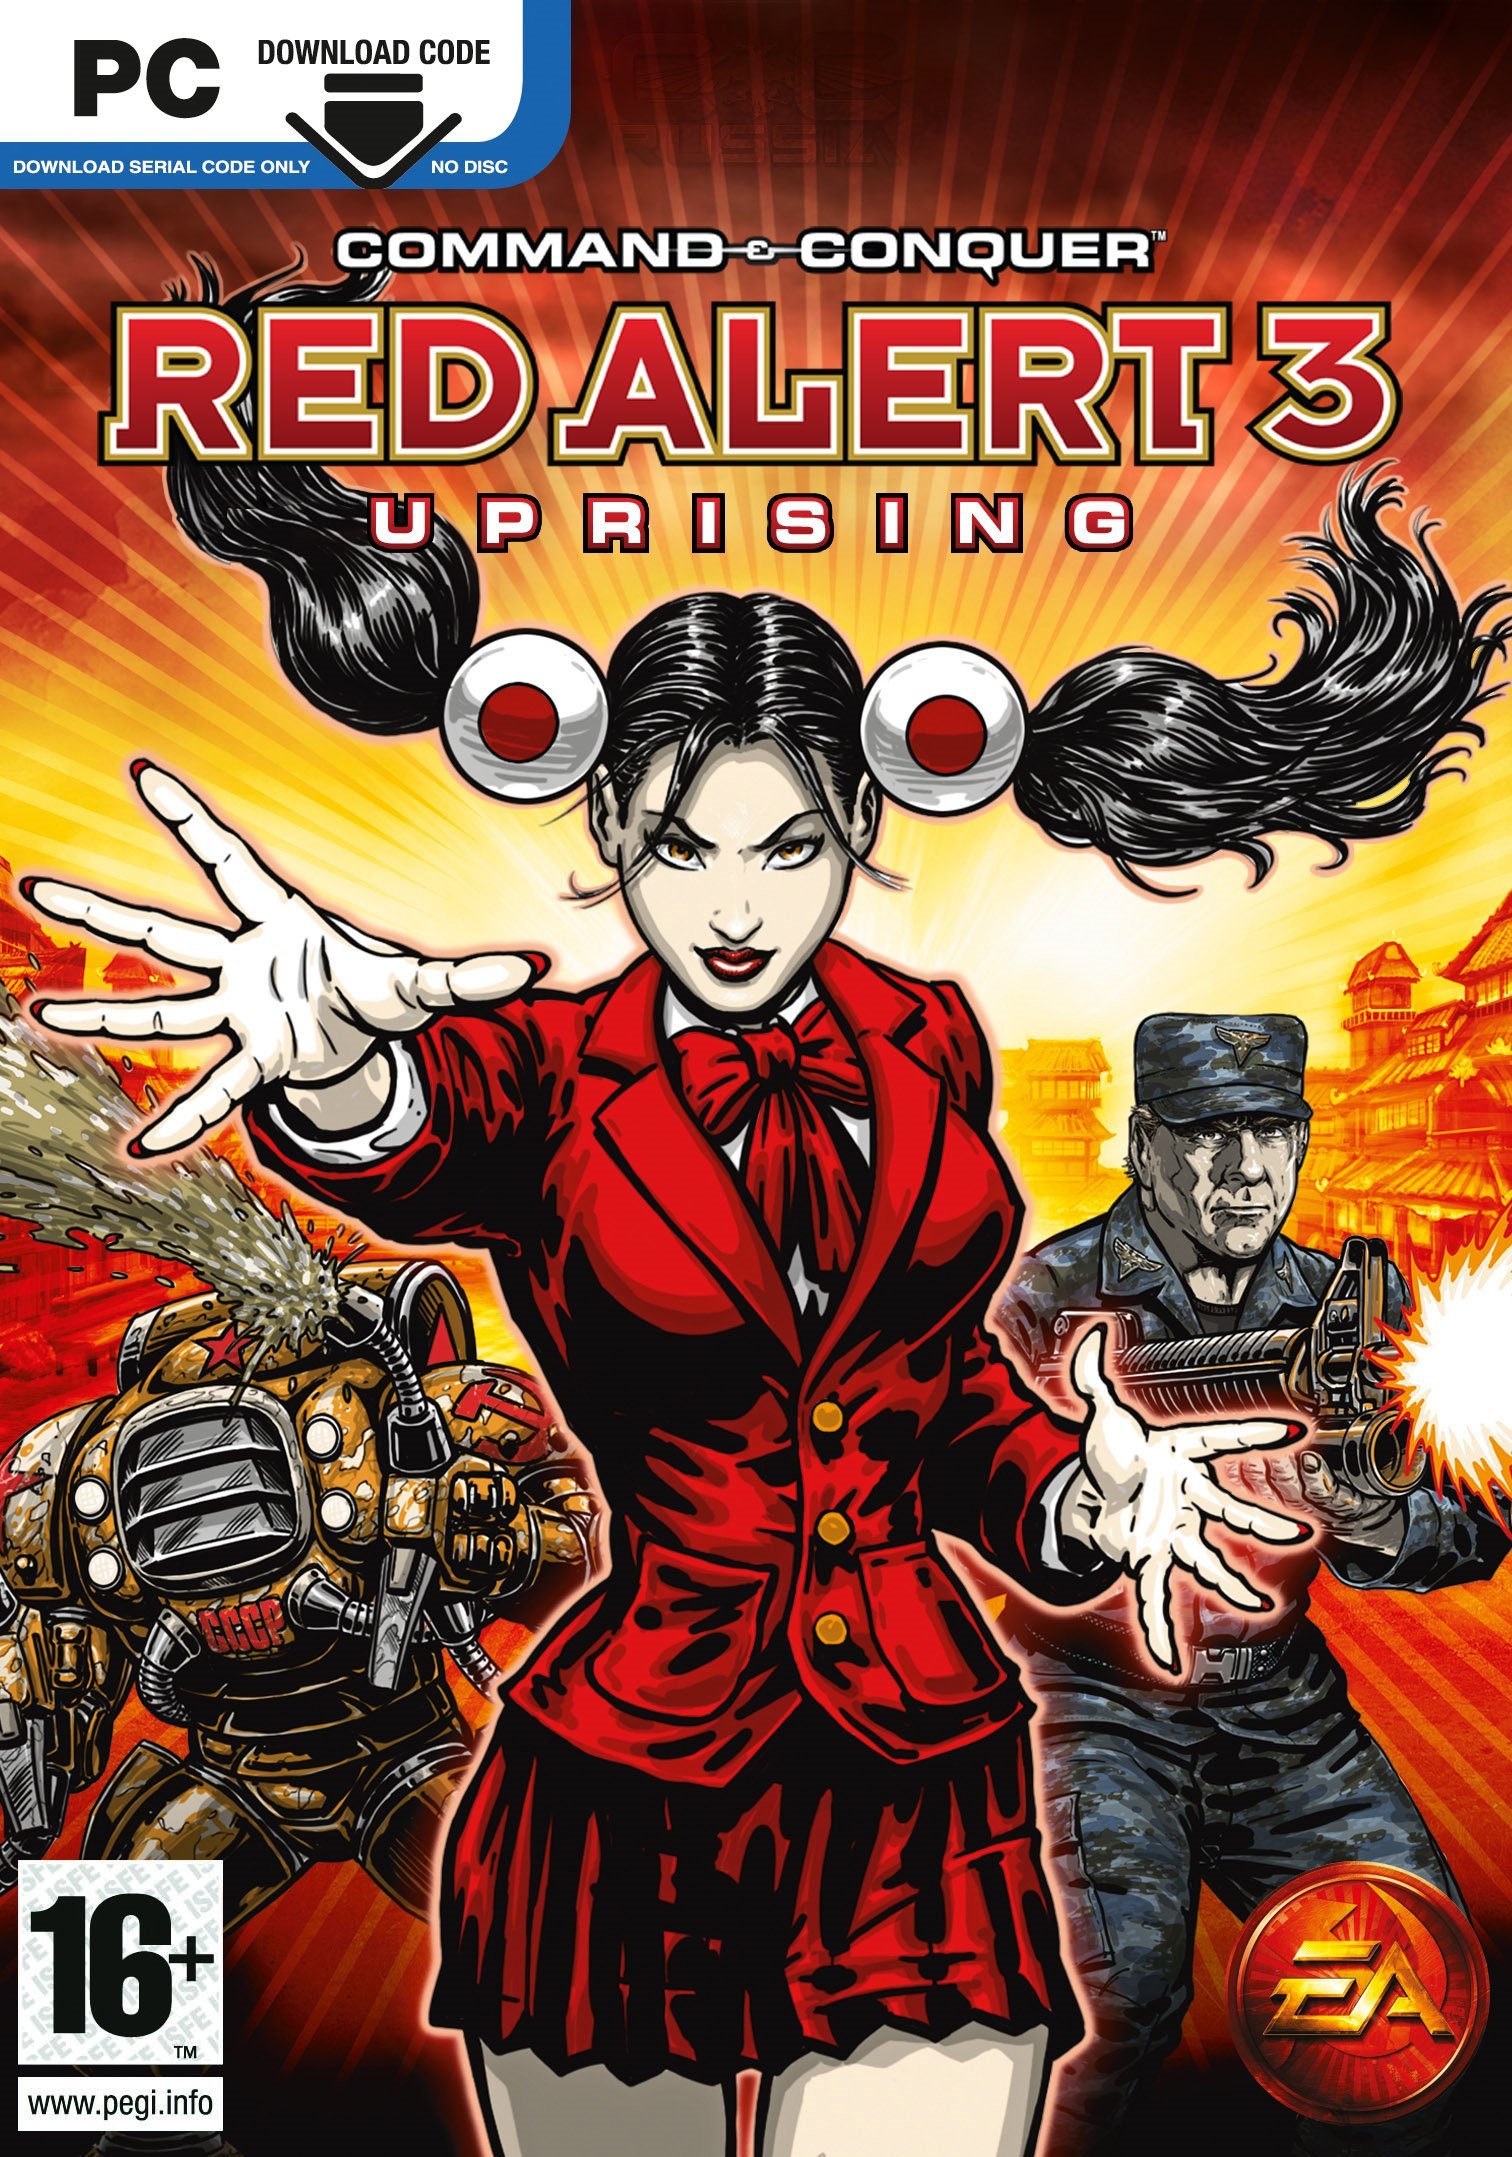 Image result for Command And Conquer Red Alert 3 cover pc